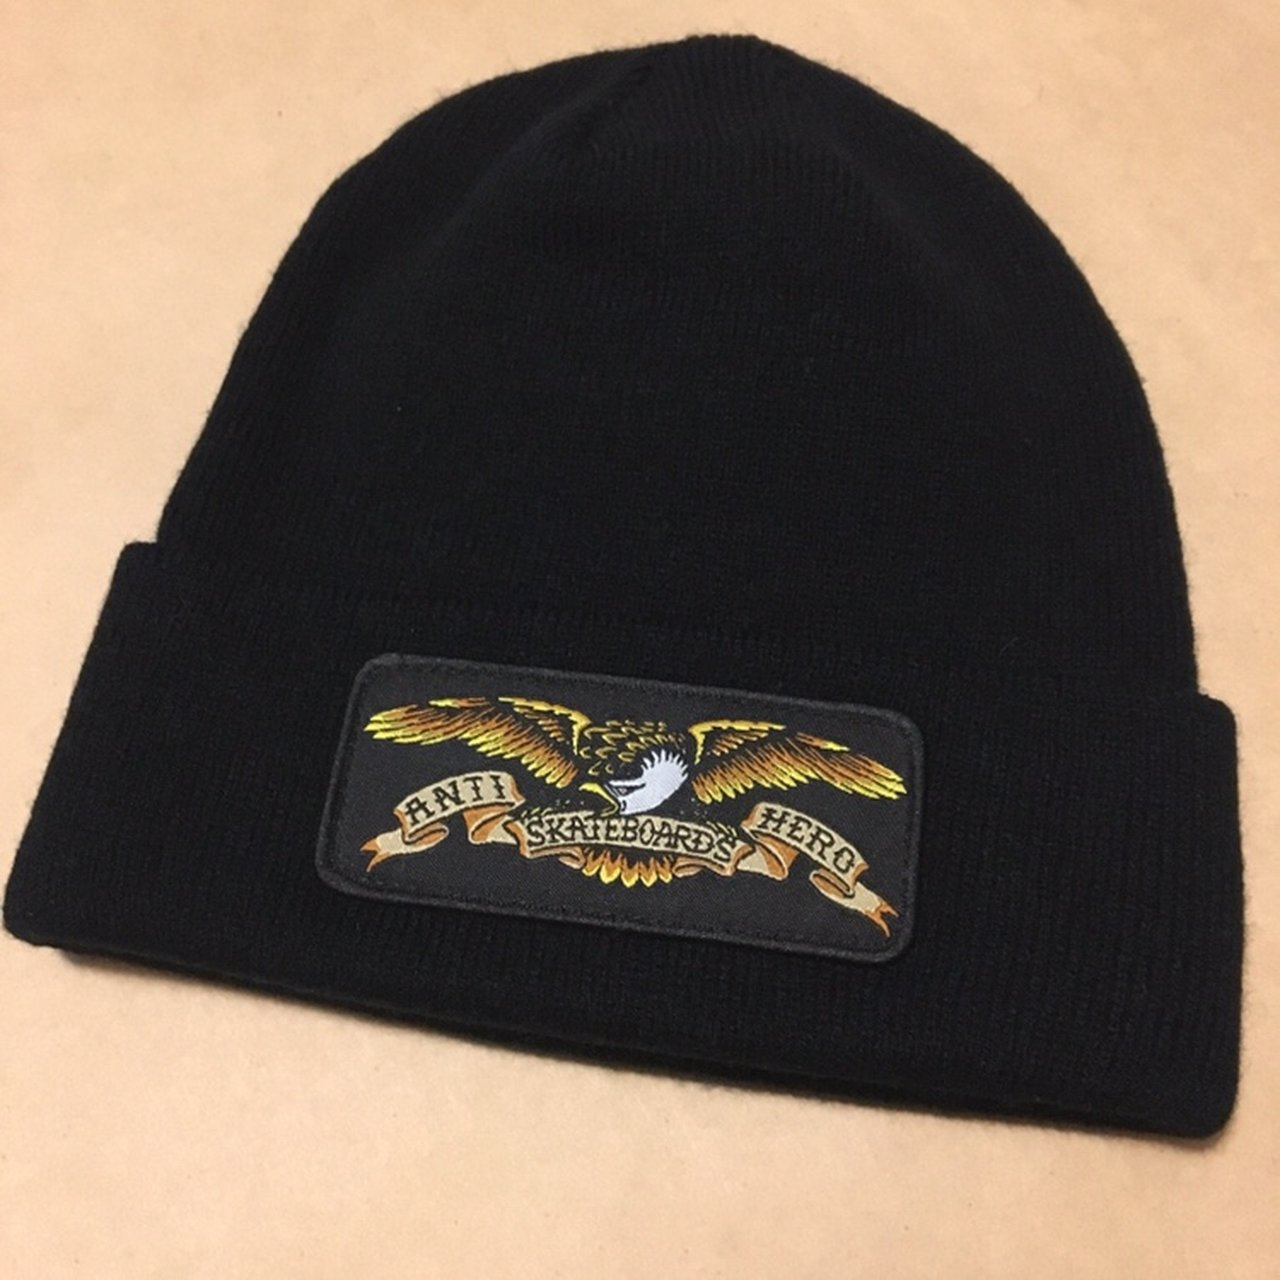 NEW ANTI HERO BEANIE IN BLACK. NEW WITH NO TAGS AND SHIP - Depop be3cc59c7ef